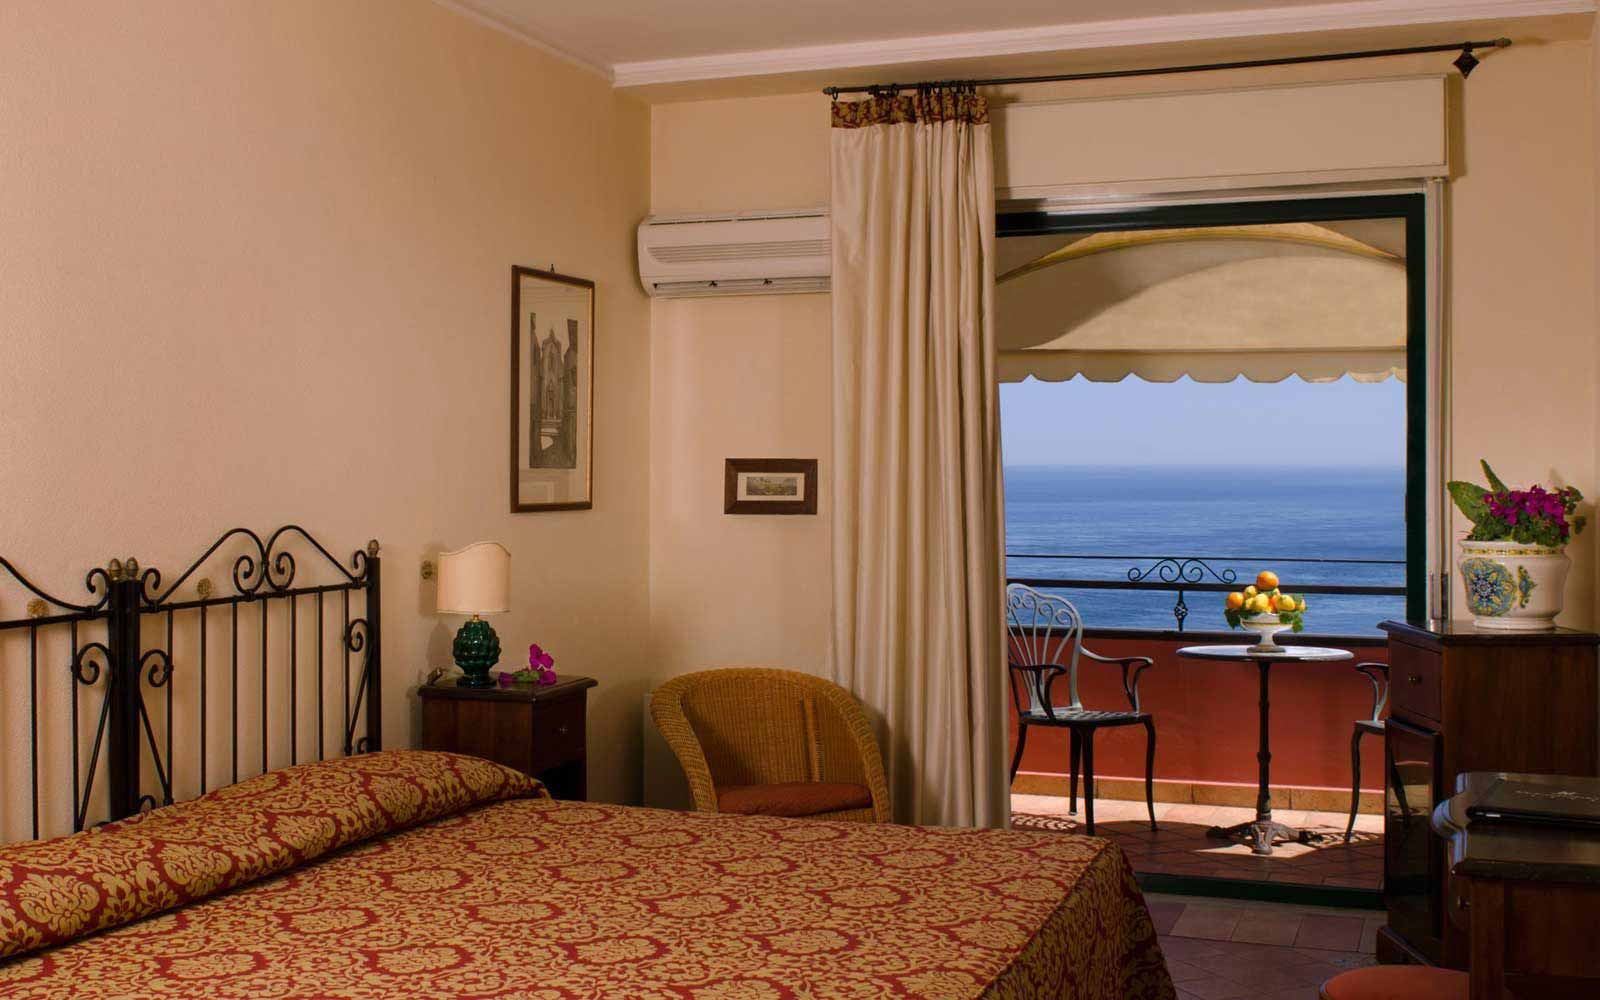 Classic room at Hotel Baia Taormina